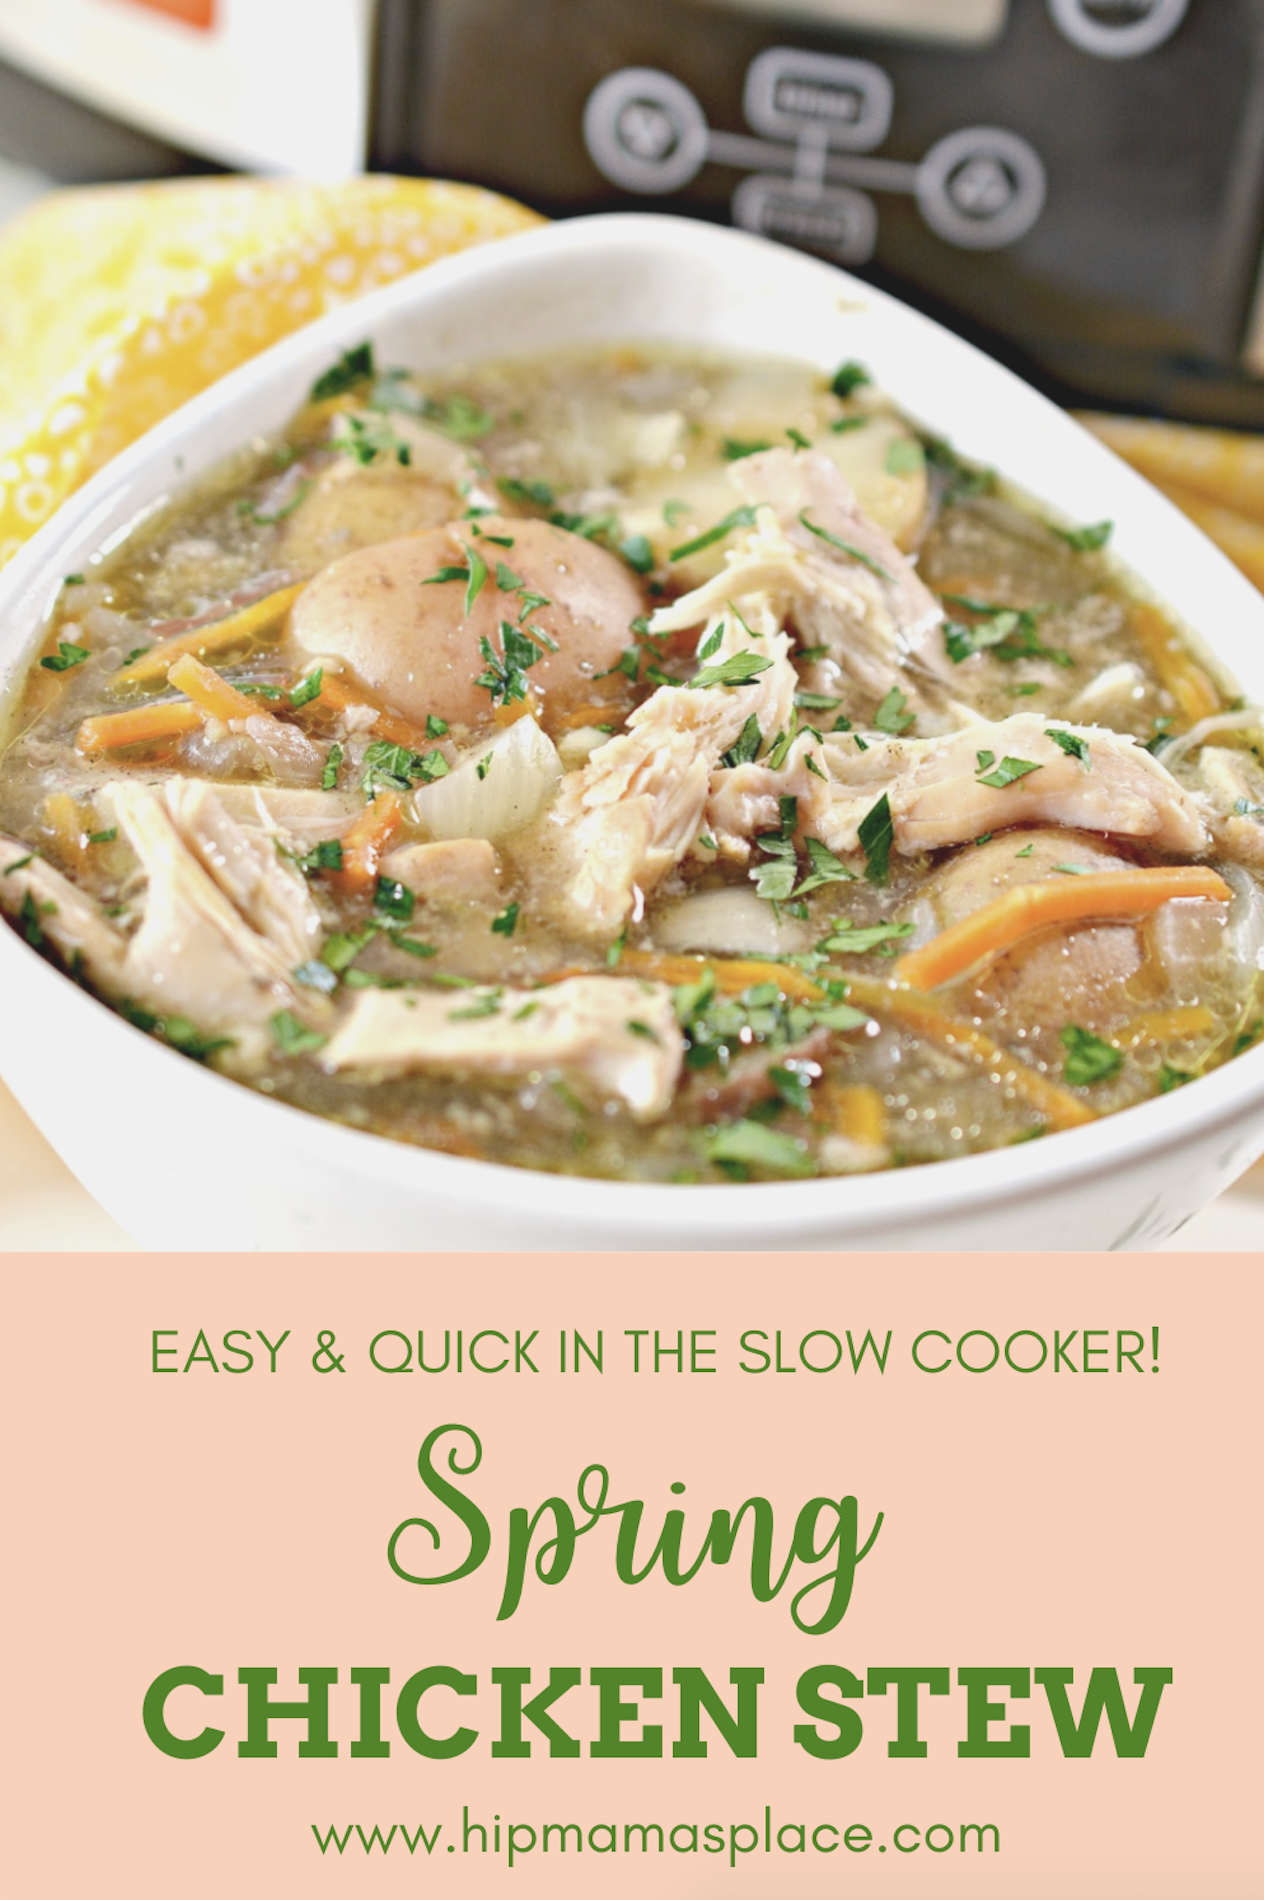 Easy and quick slow cooker Spring Chicken Stew made with sweet Vidalia Onions and fresh veggies #AD #onlyVidalia #slowcookermeals #easyrecipes #comfortfood